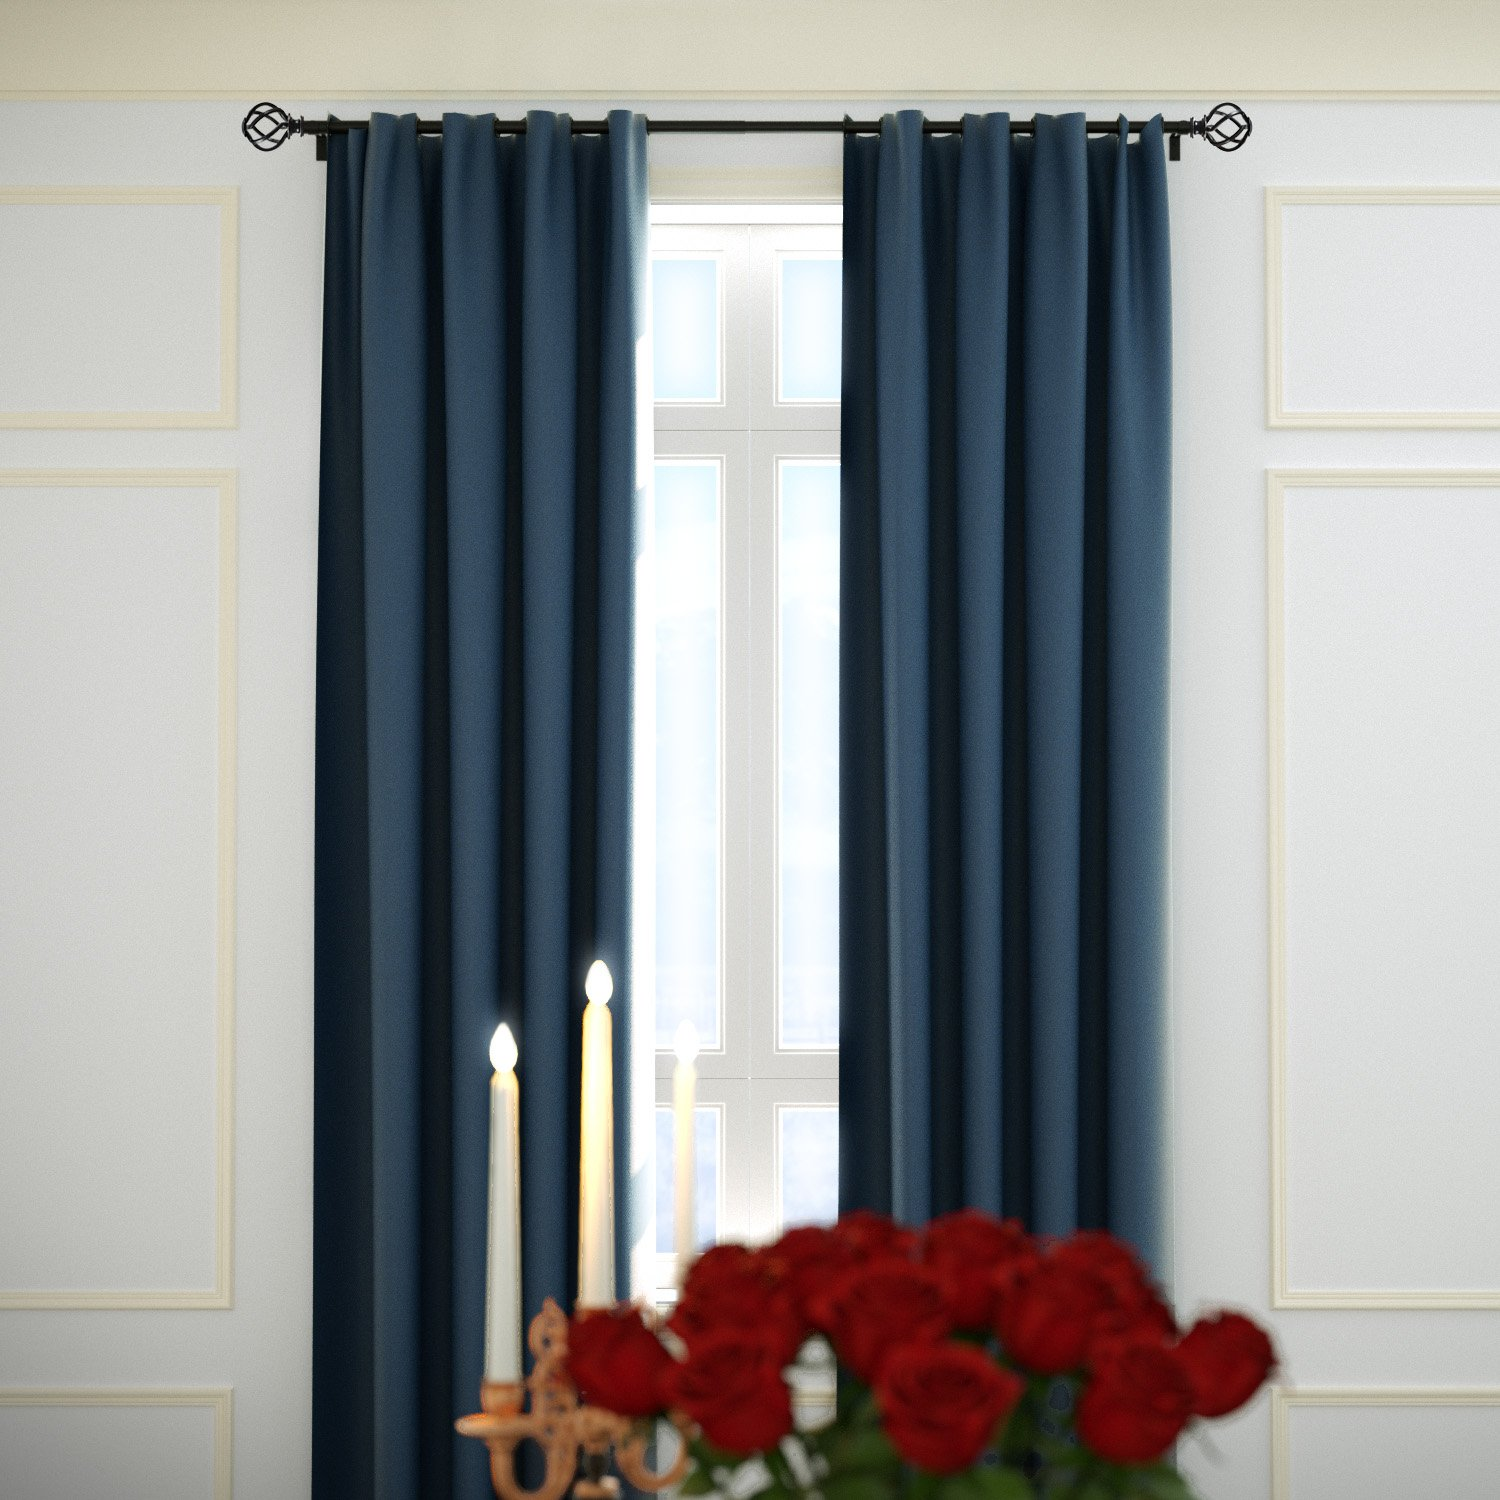 "KAMANINA 1"" Curtain Rod Single Window Rod 72-144"" with Twisting Cage Finials, Black, Drapery Rod of Window Treatment"